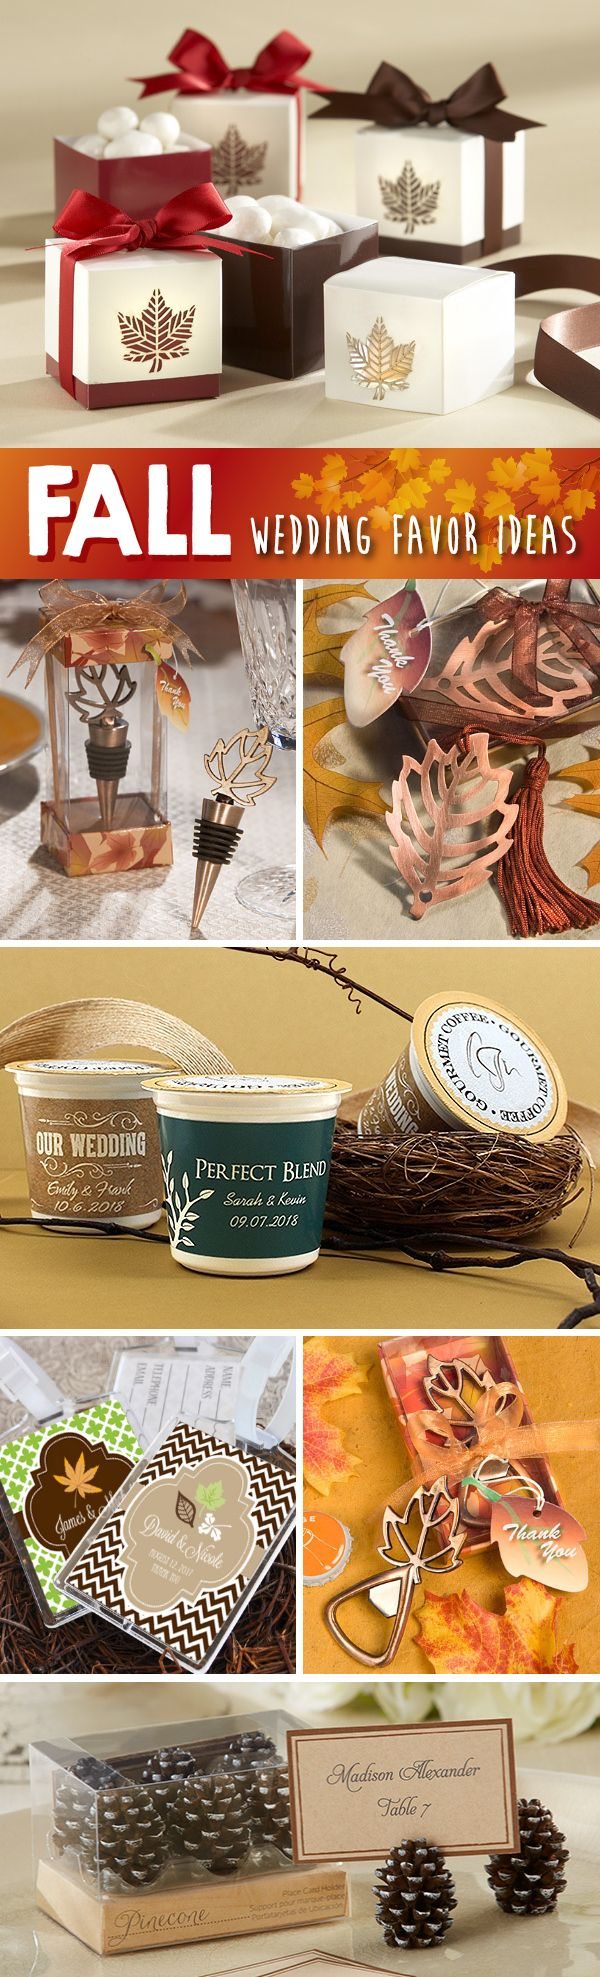 100 Festive Fall Wedding Favor Ideas Wedding Ideas The Wedding